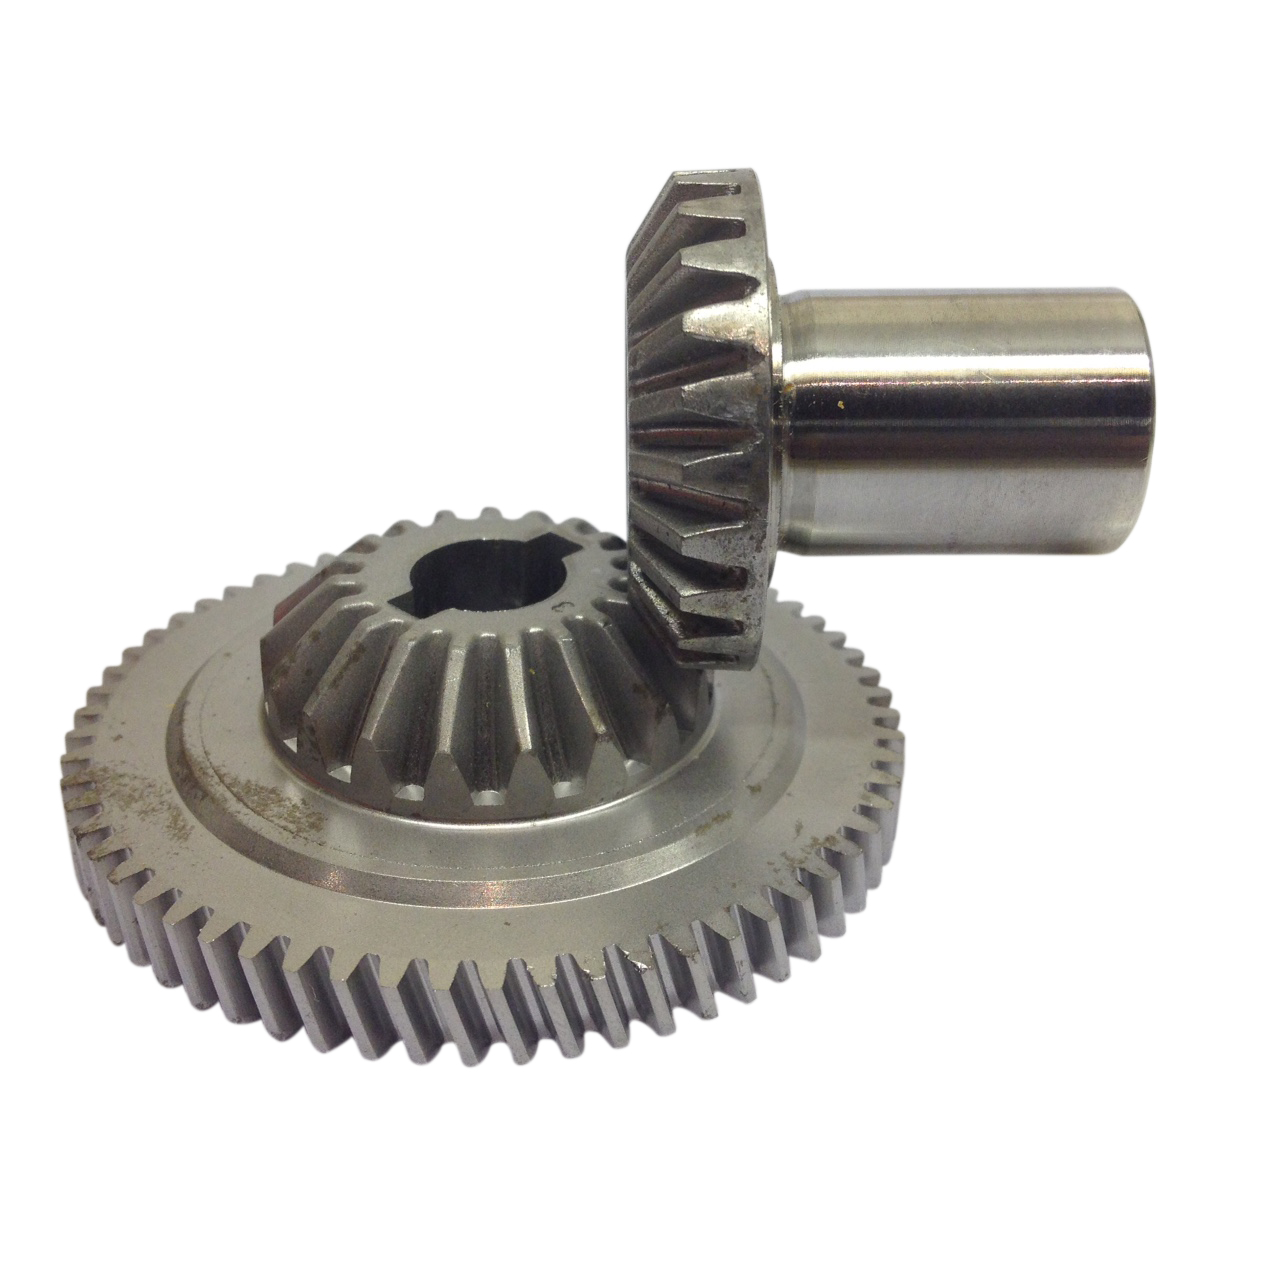 Kitchenaid Stand Mixer Attachment Hub Bevelled Gear And